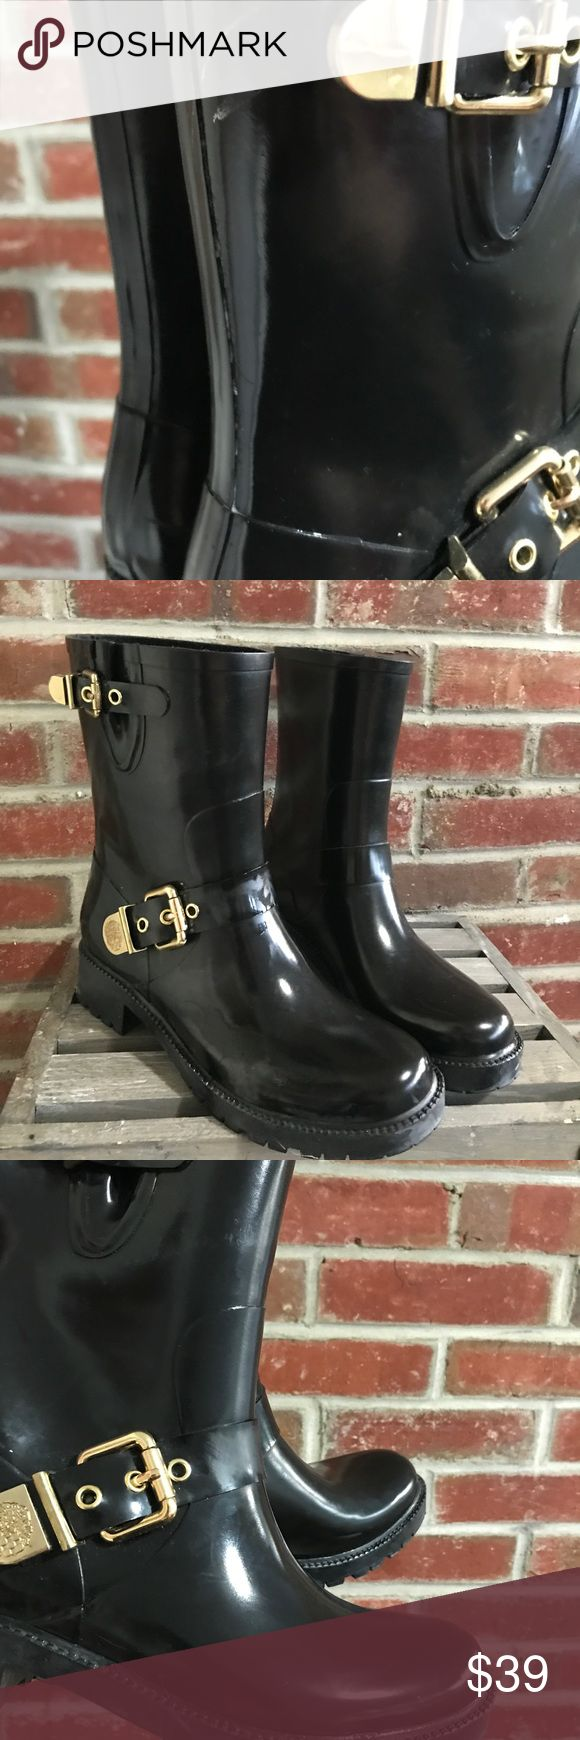 Vince Camuto Hinch black rubber rain boots 8 shoes Vince Camuto rain boots in size 8. The style is hinch. Worn a few times, good preowned condition. Please note that there is a mark on the back of one boot by the buckle, see last picture. Vince Camuto Shoes Winter & Rain Boots